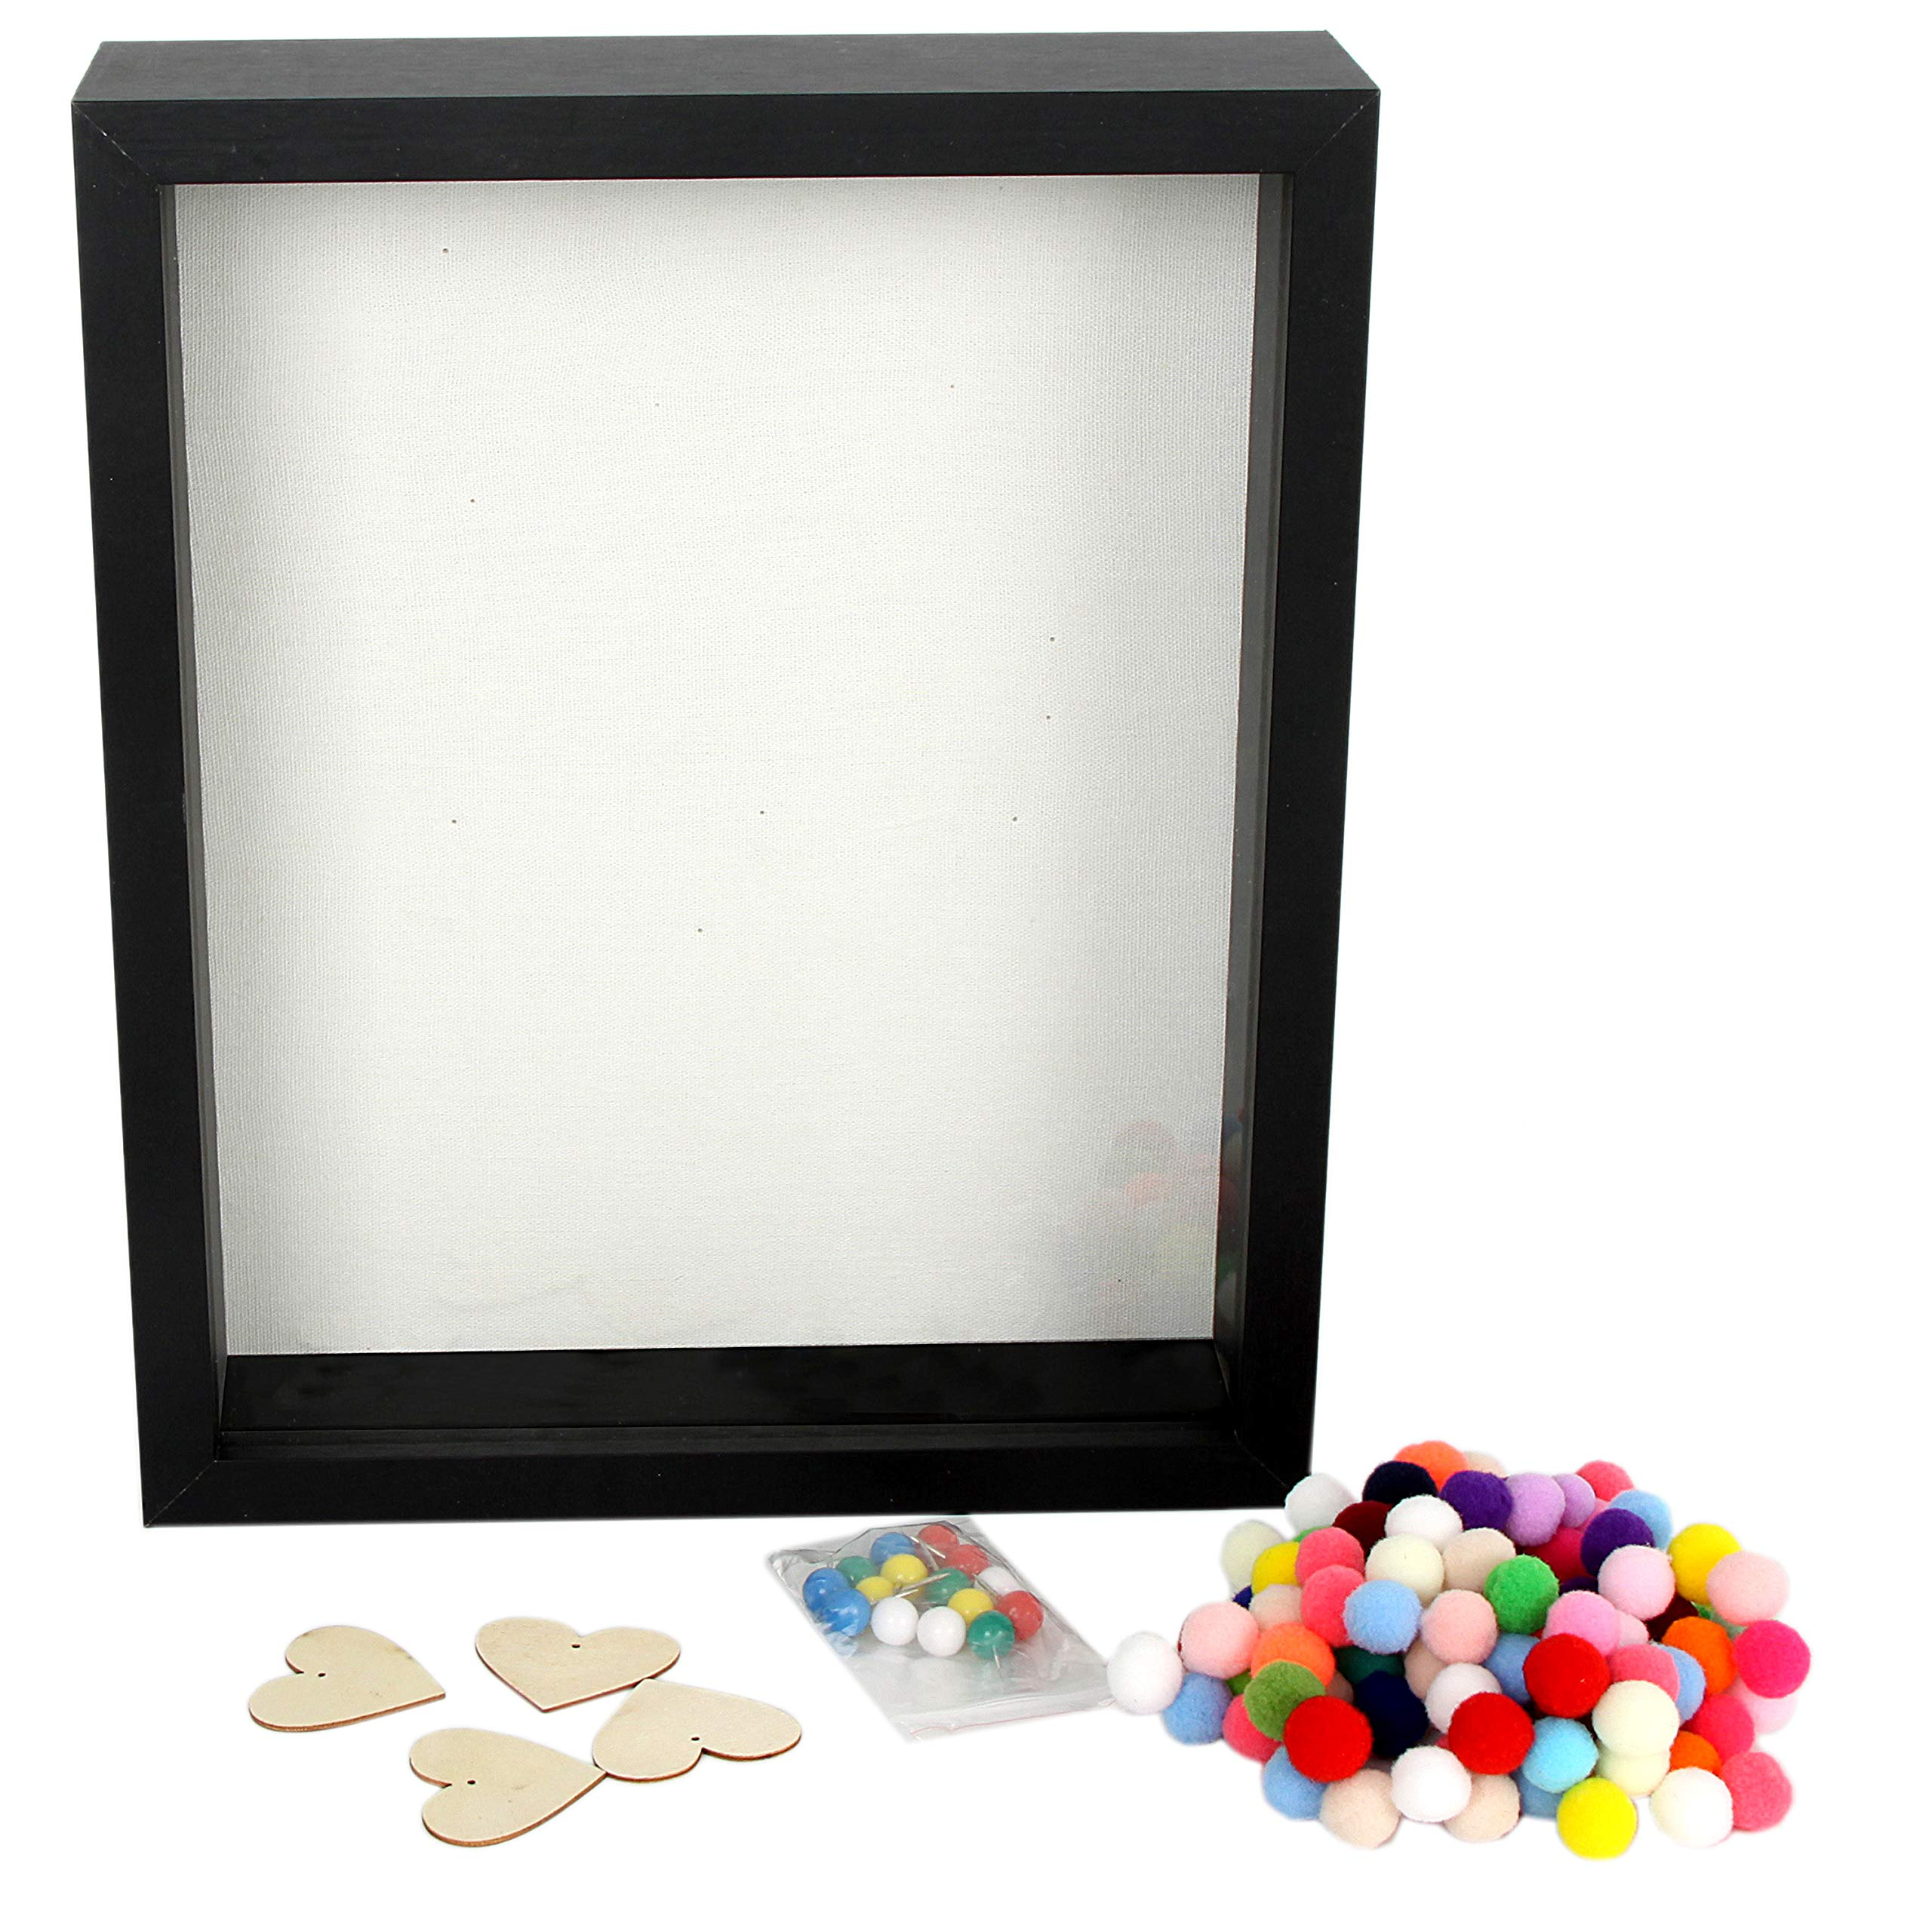 DiamondDec Shadow Box Frame Display Case 8x10 Black with Soft Linen Back, 3-D Wood Deep Large Shadowbox Picture Frame for Wedding Memorabilia, Adventure Tickets, Medals,  Travel Keepsake and more by DiamondDec